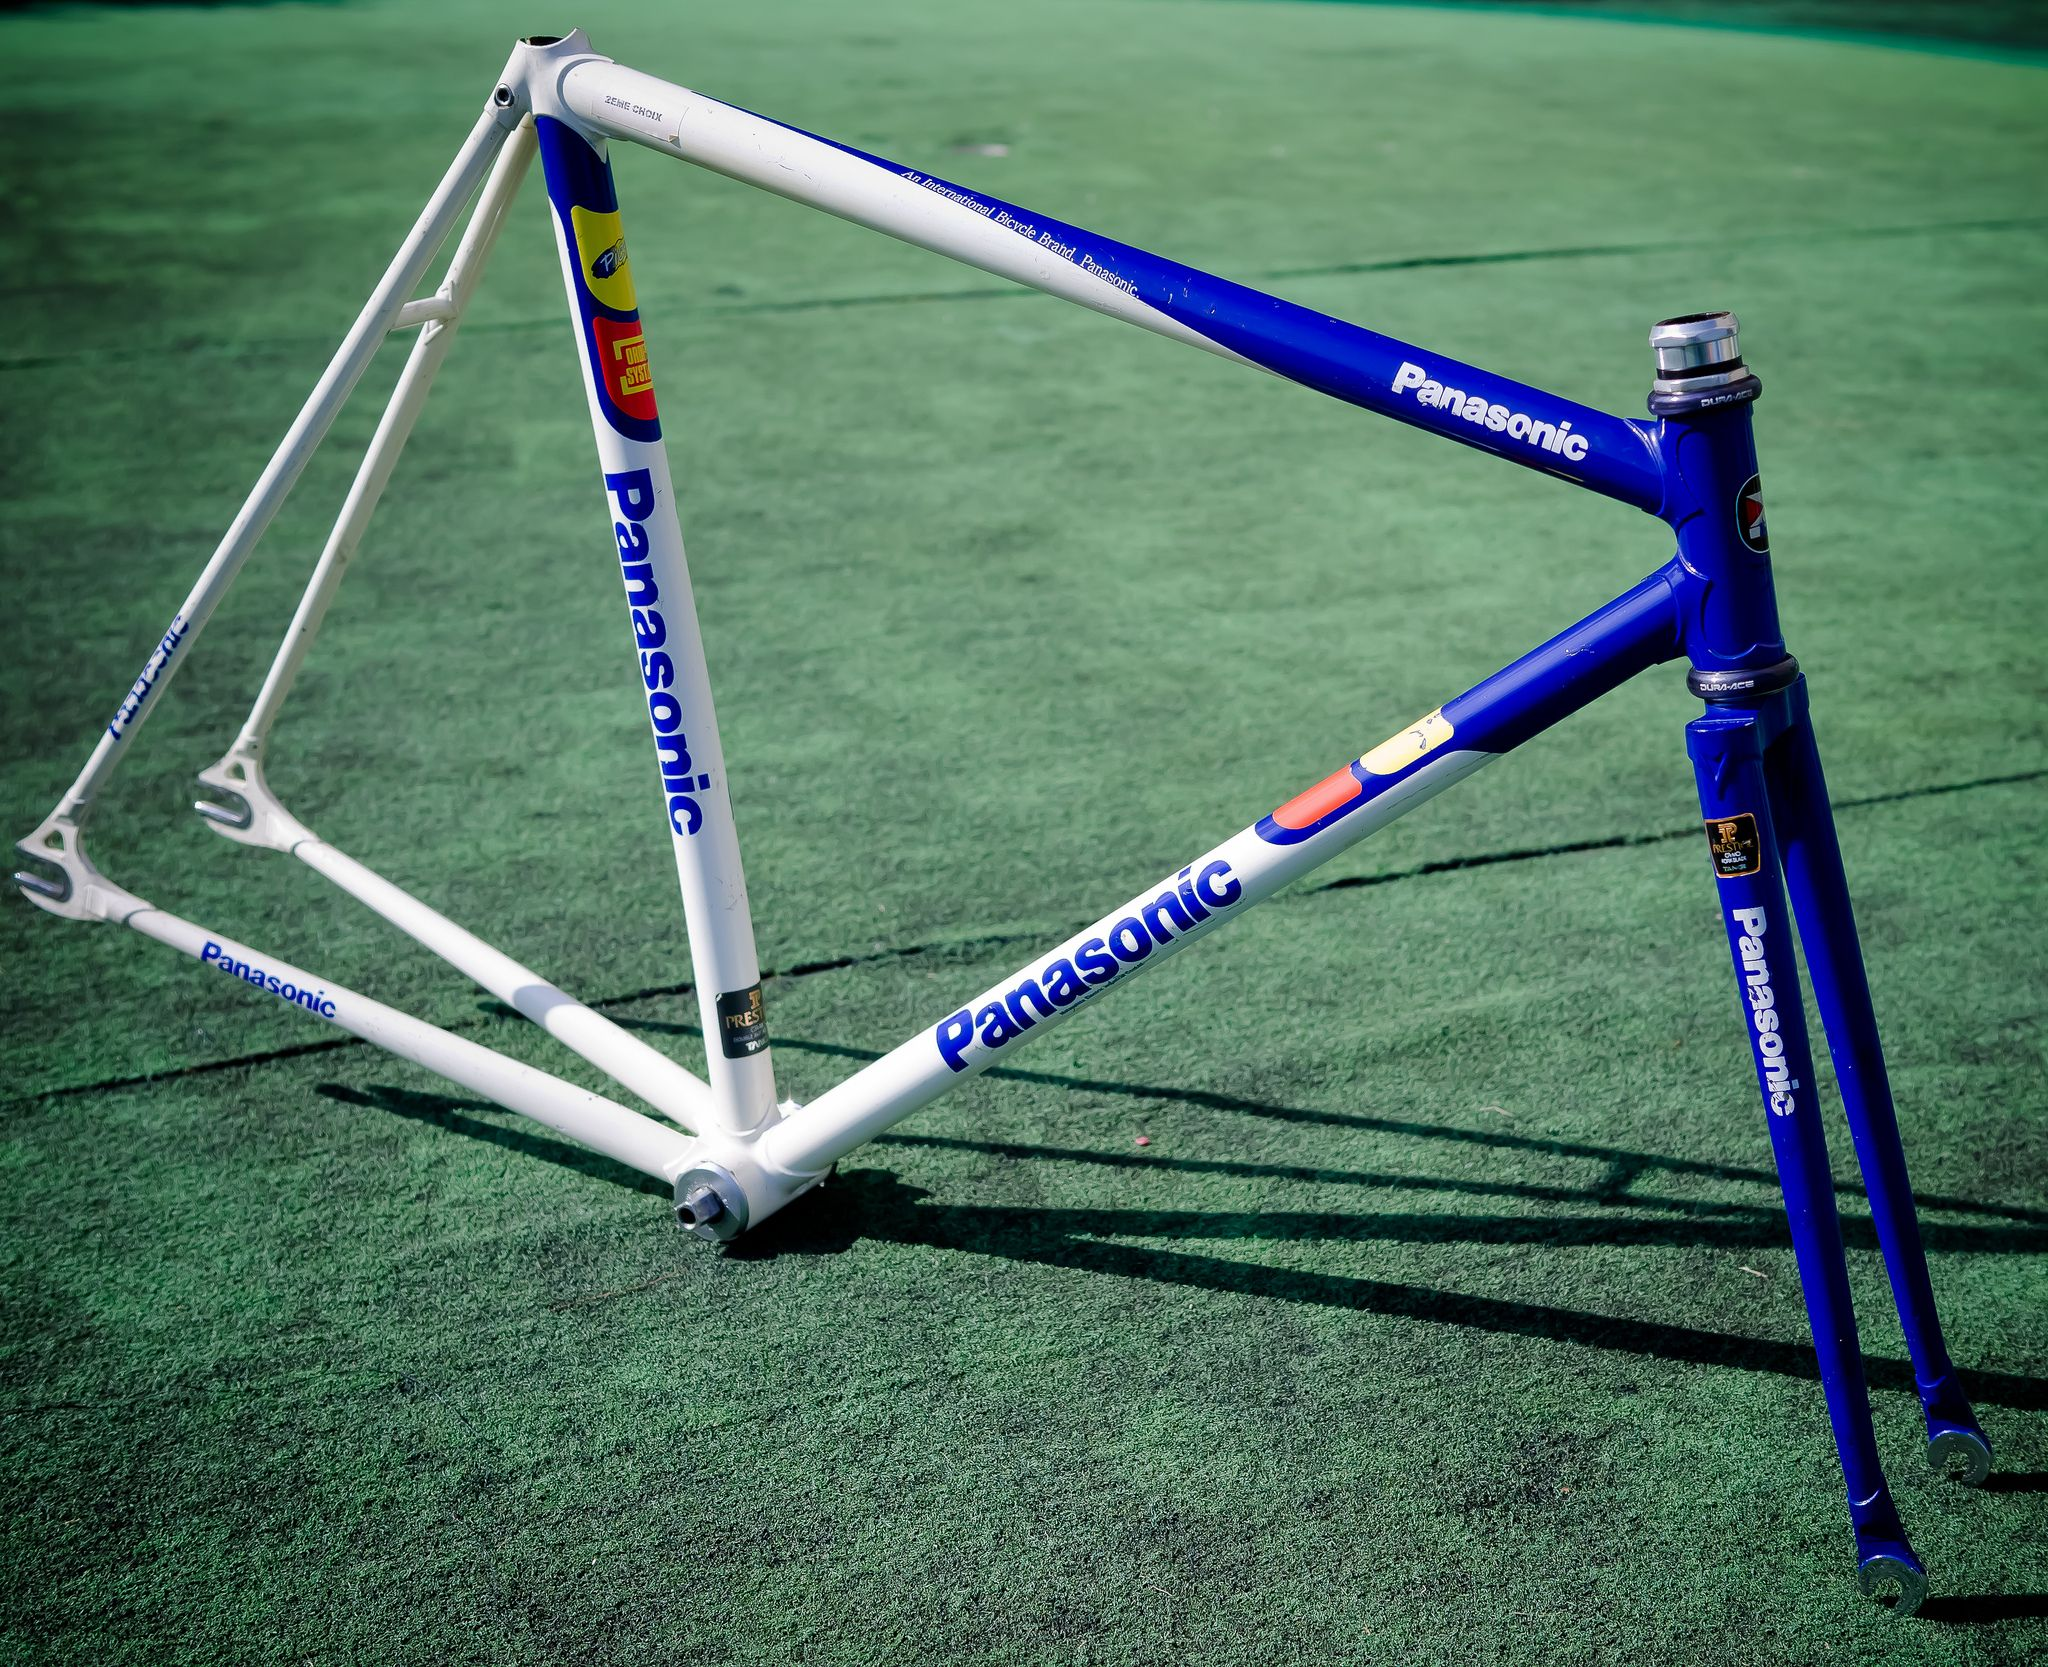 PANASONIC pursuit track njs